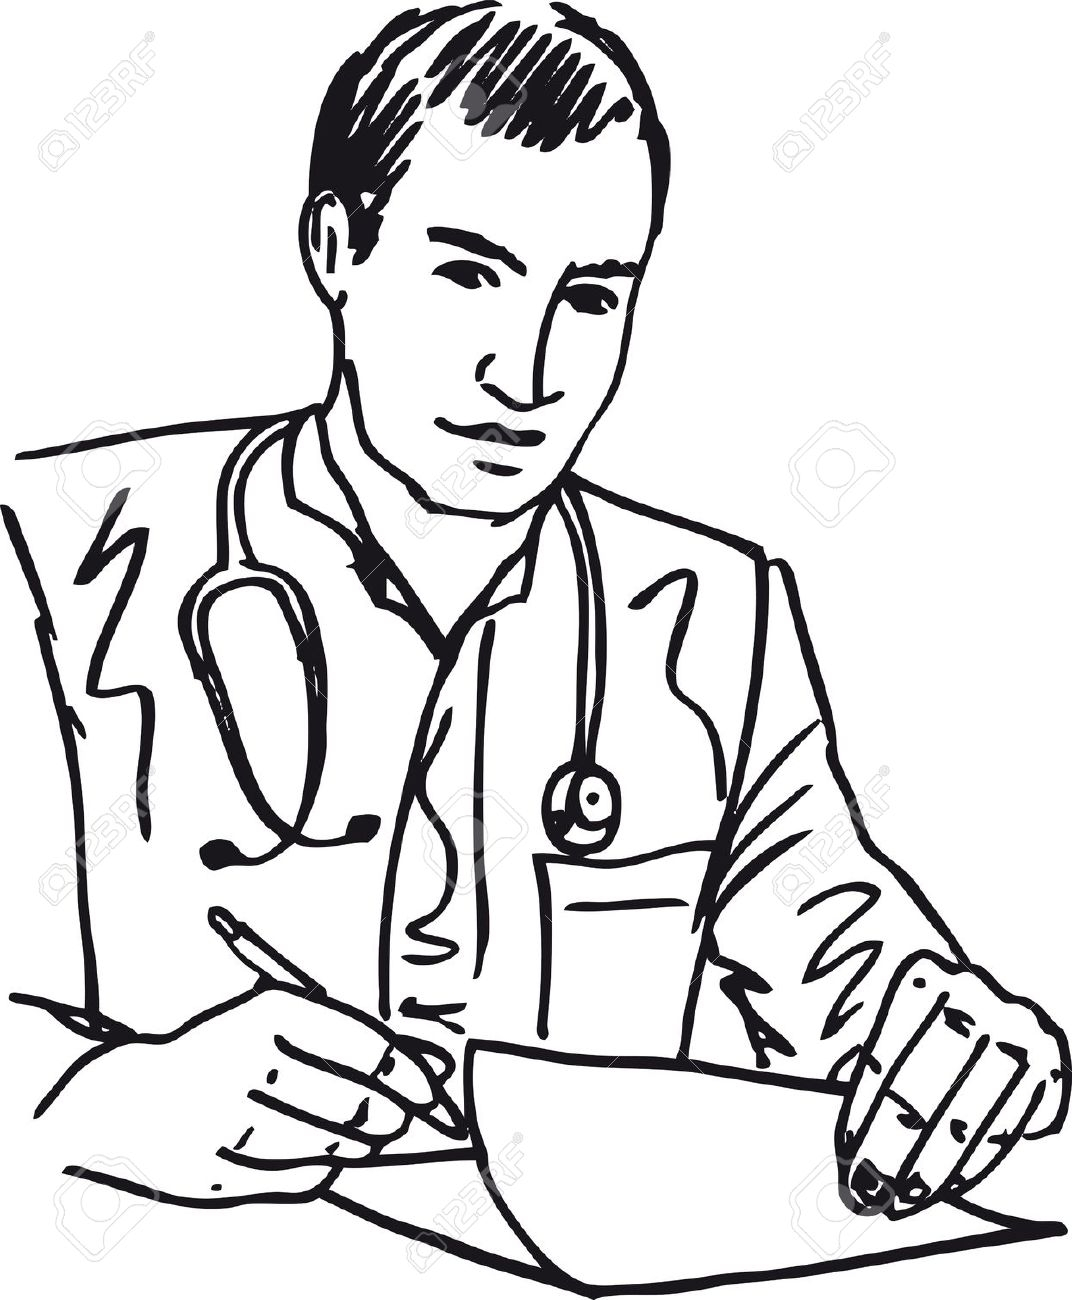 Black And White Clipart Of Doctor.